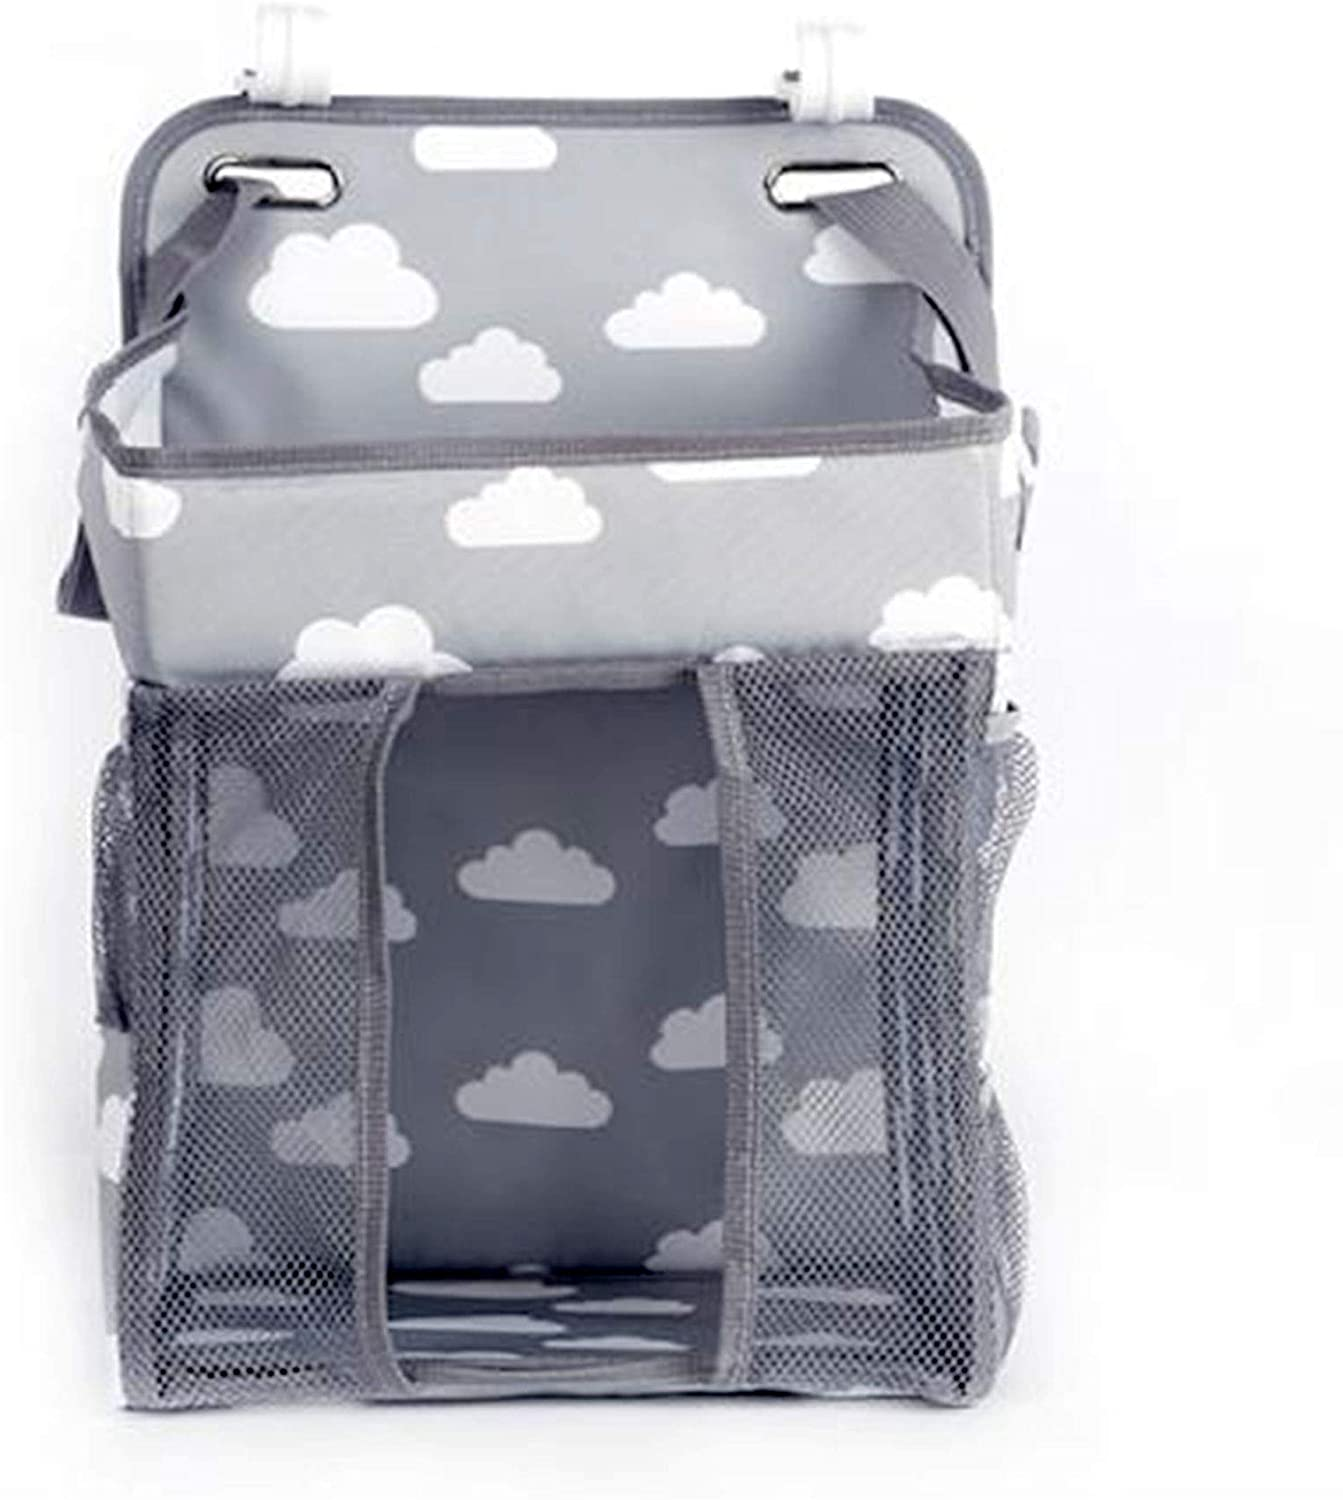 Hanging Diaper Caddy Organizerwith Bibs Changing Table Diaper Stackerfor Crib Storage, Playard and Nursery Organisation